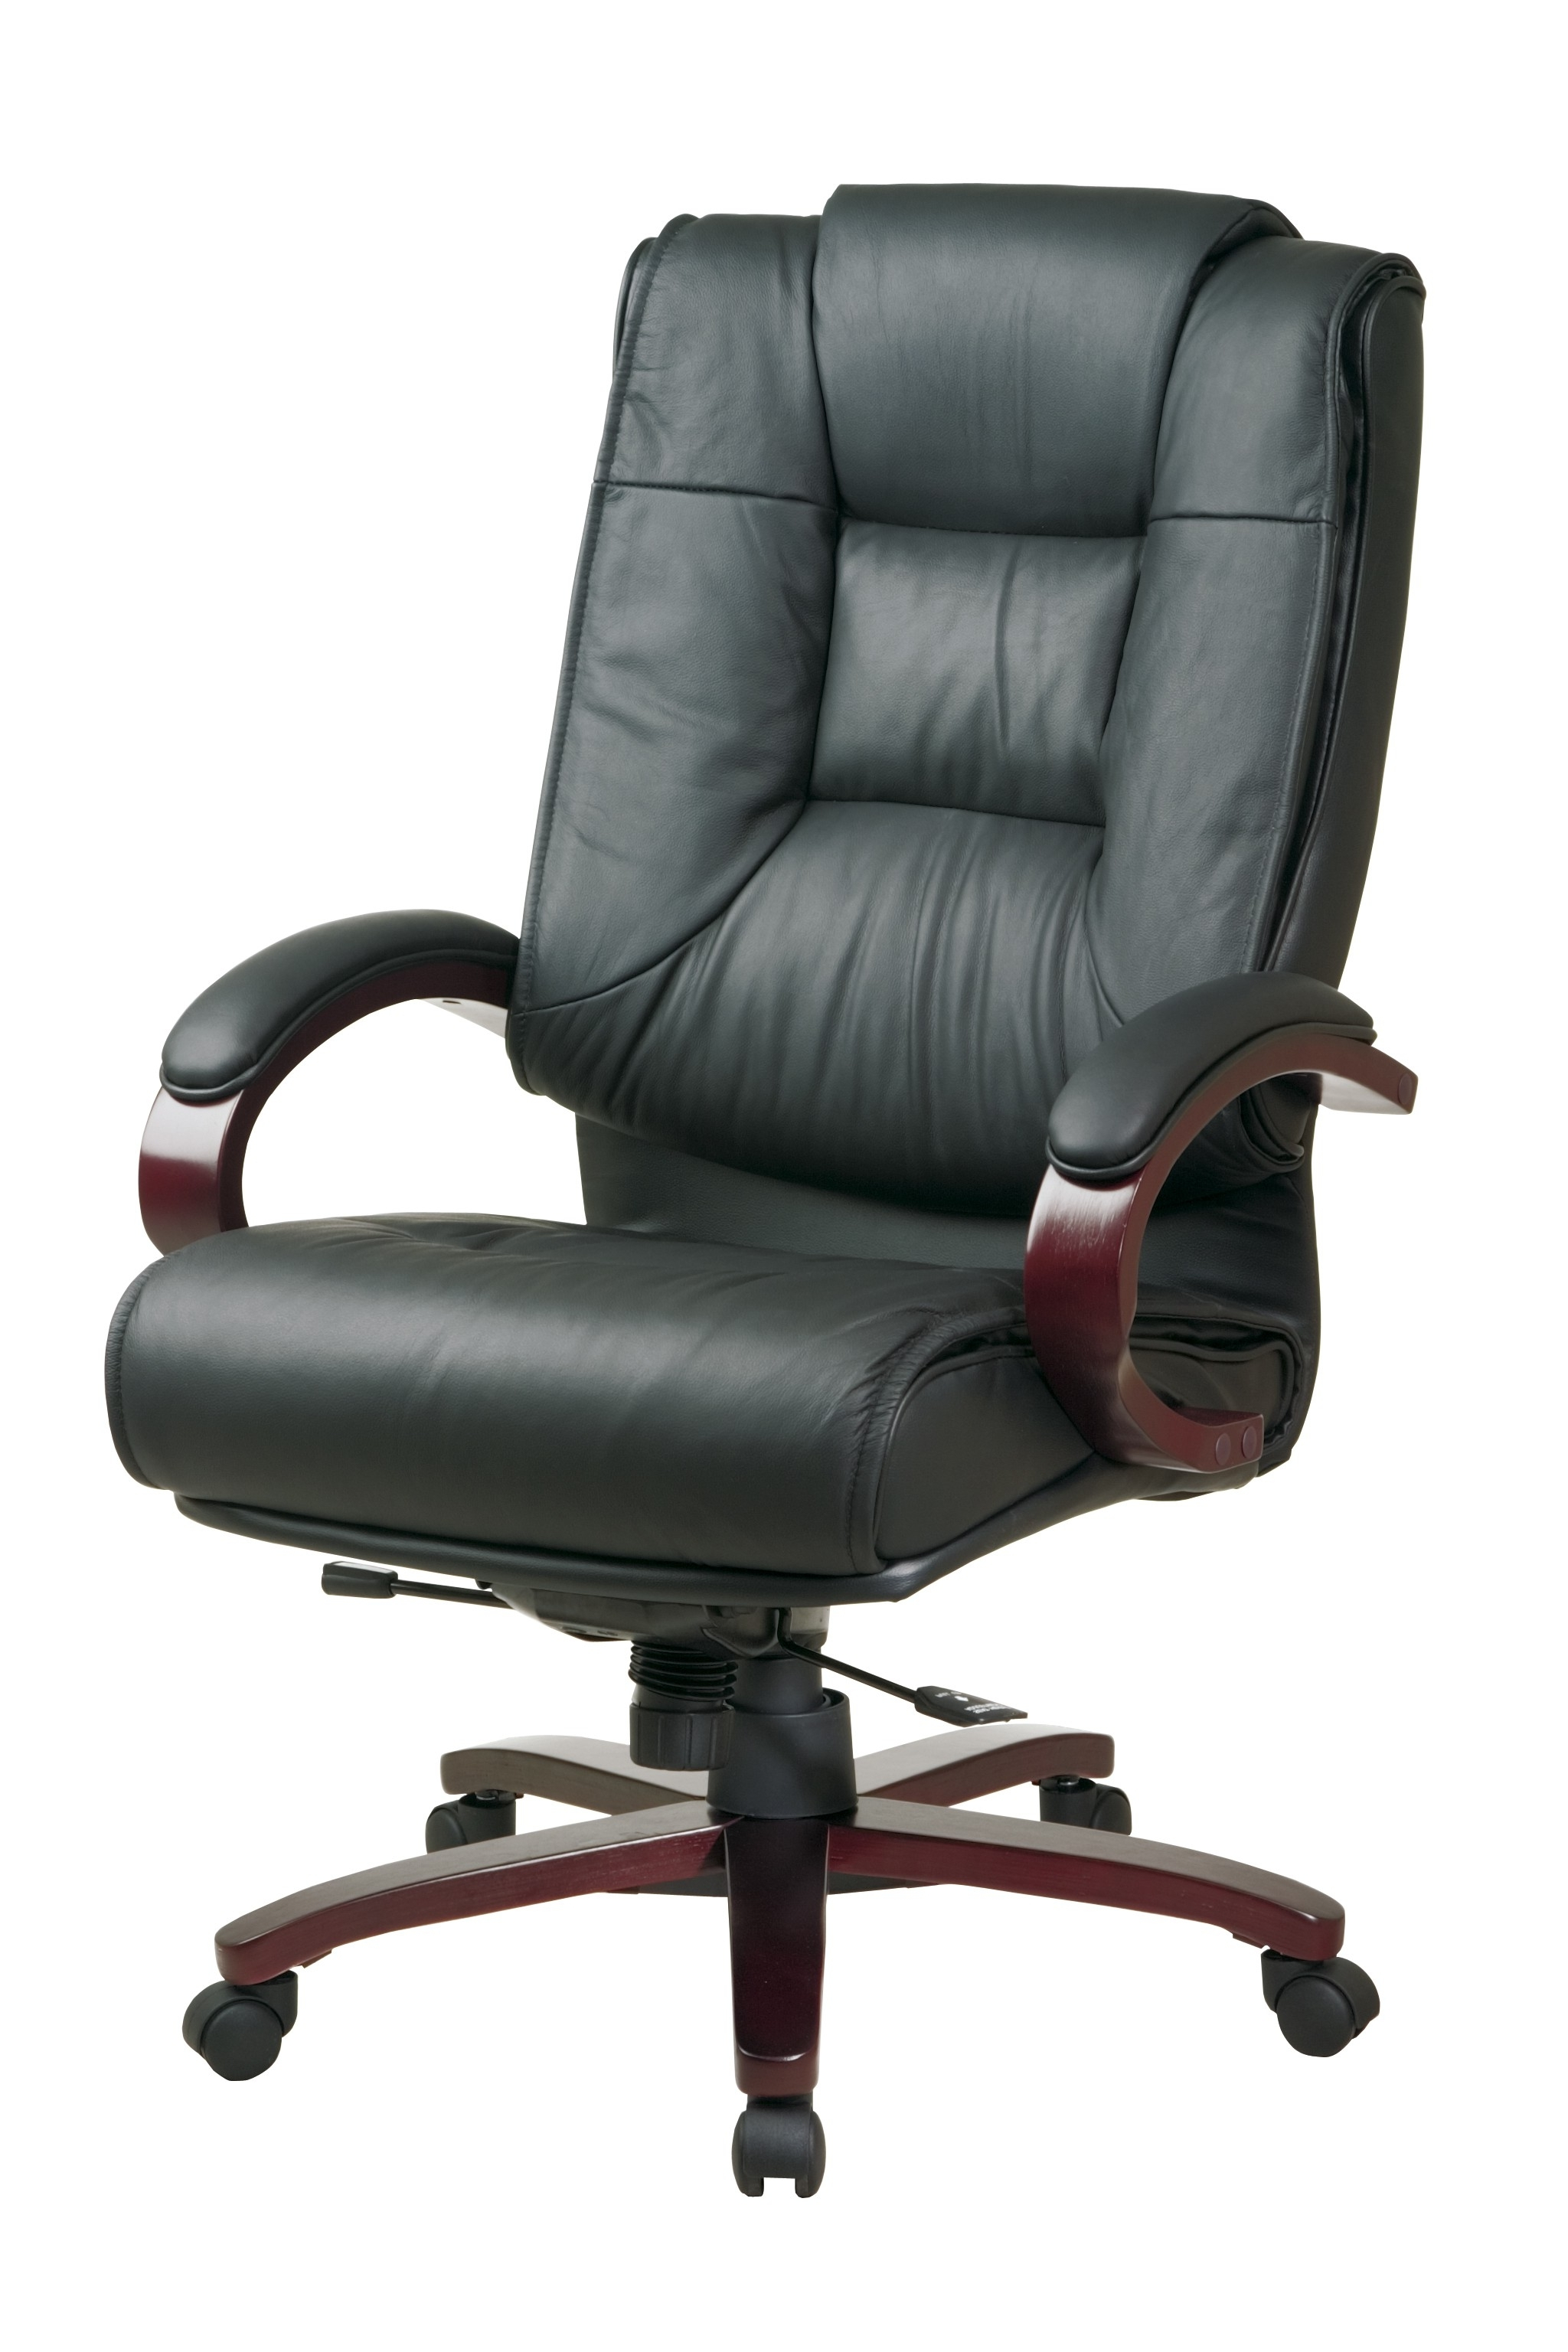 Most Recently Released Office: Office Chairs Ideas With Black Leather Executive Chair Inside Wood And Leather Executive Office Chairs (View 6 of 20)